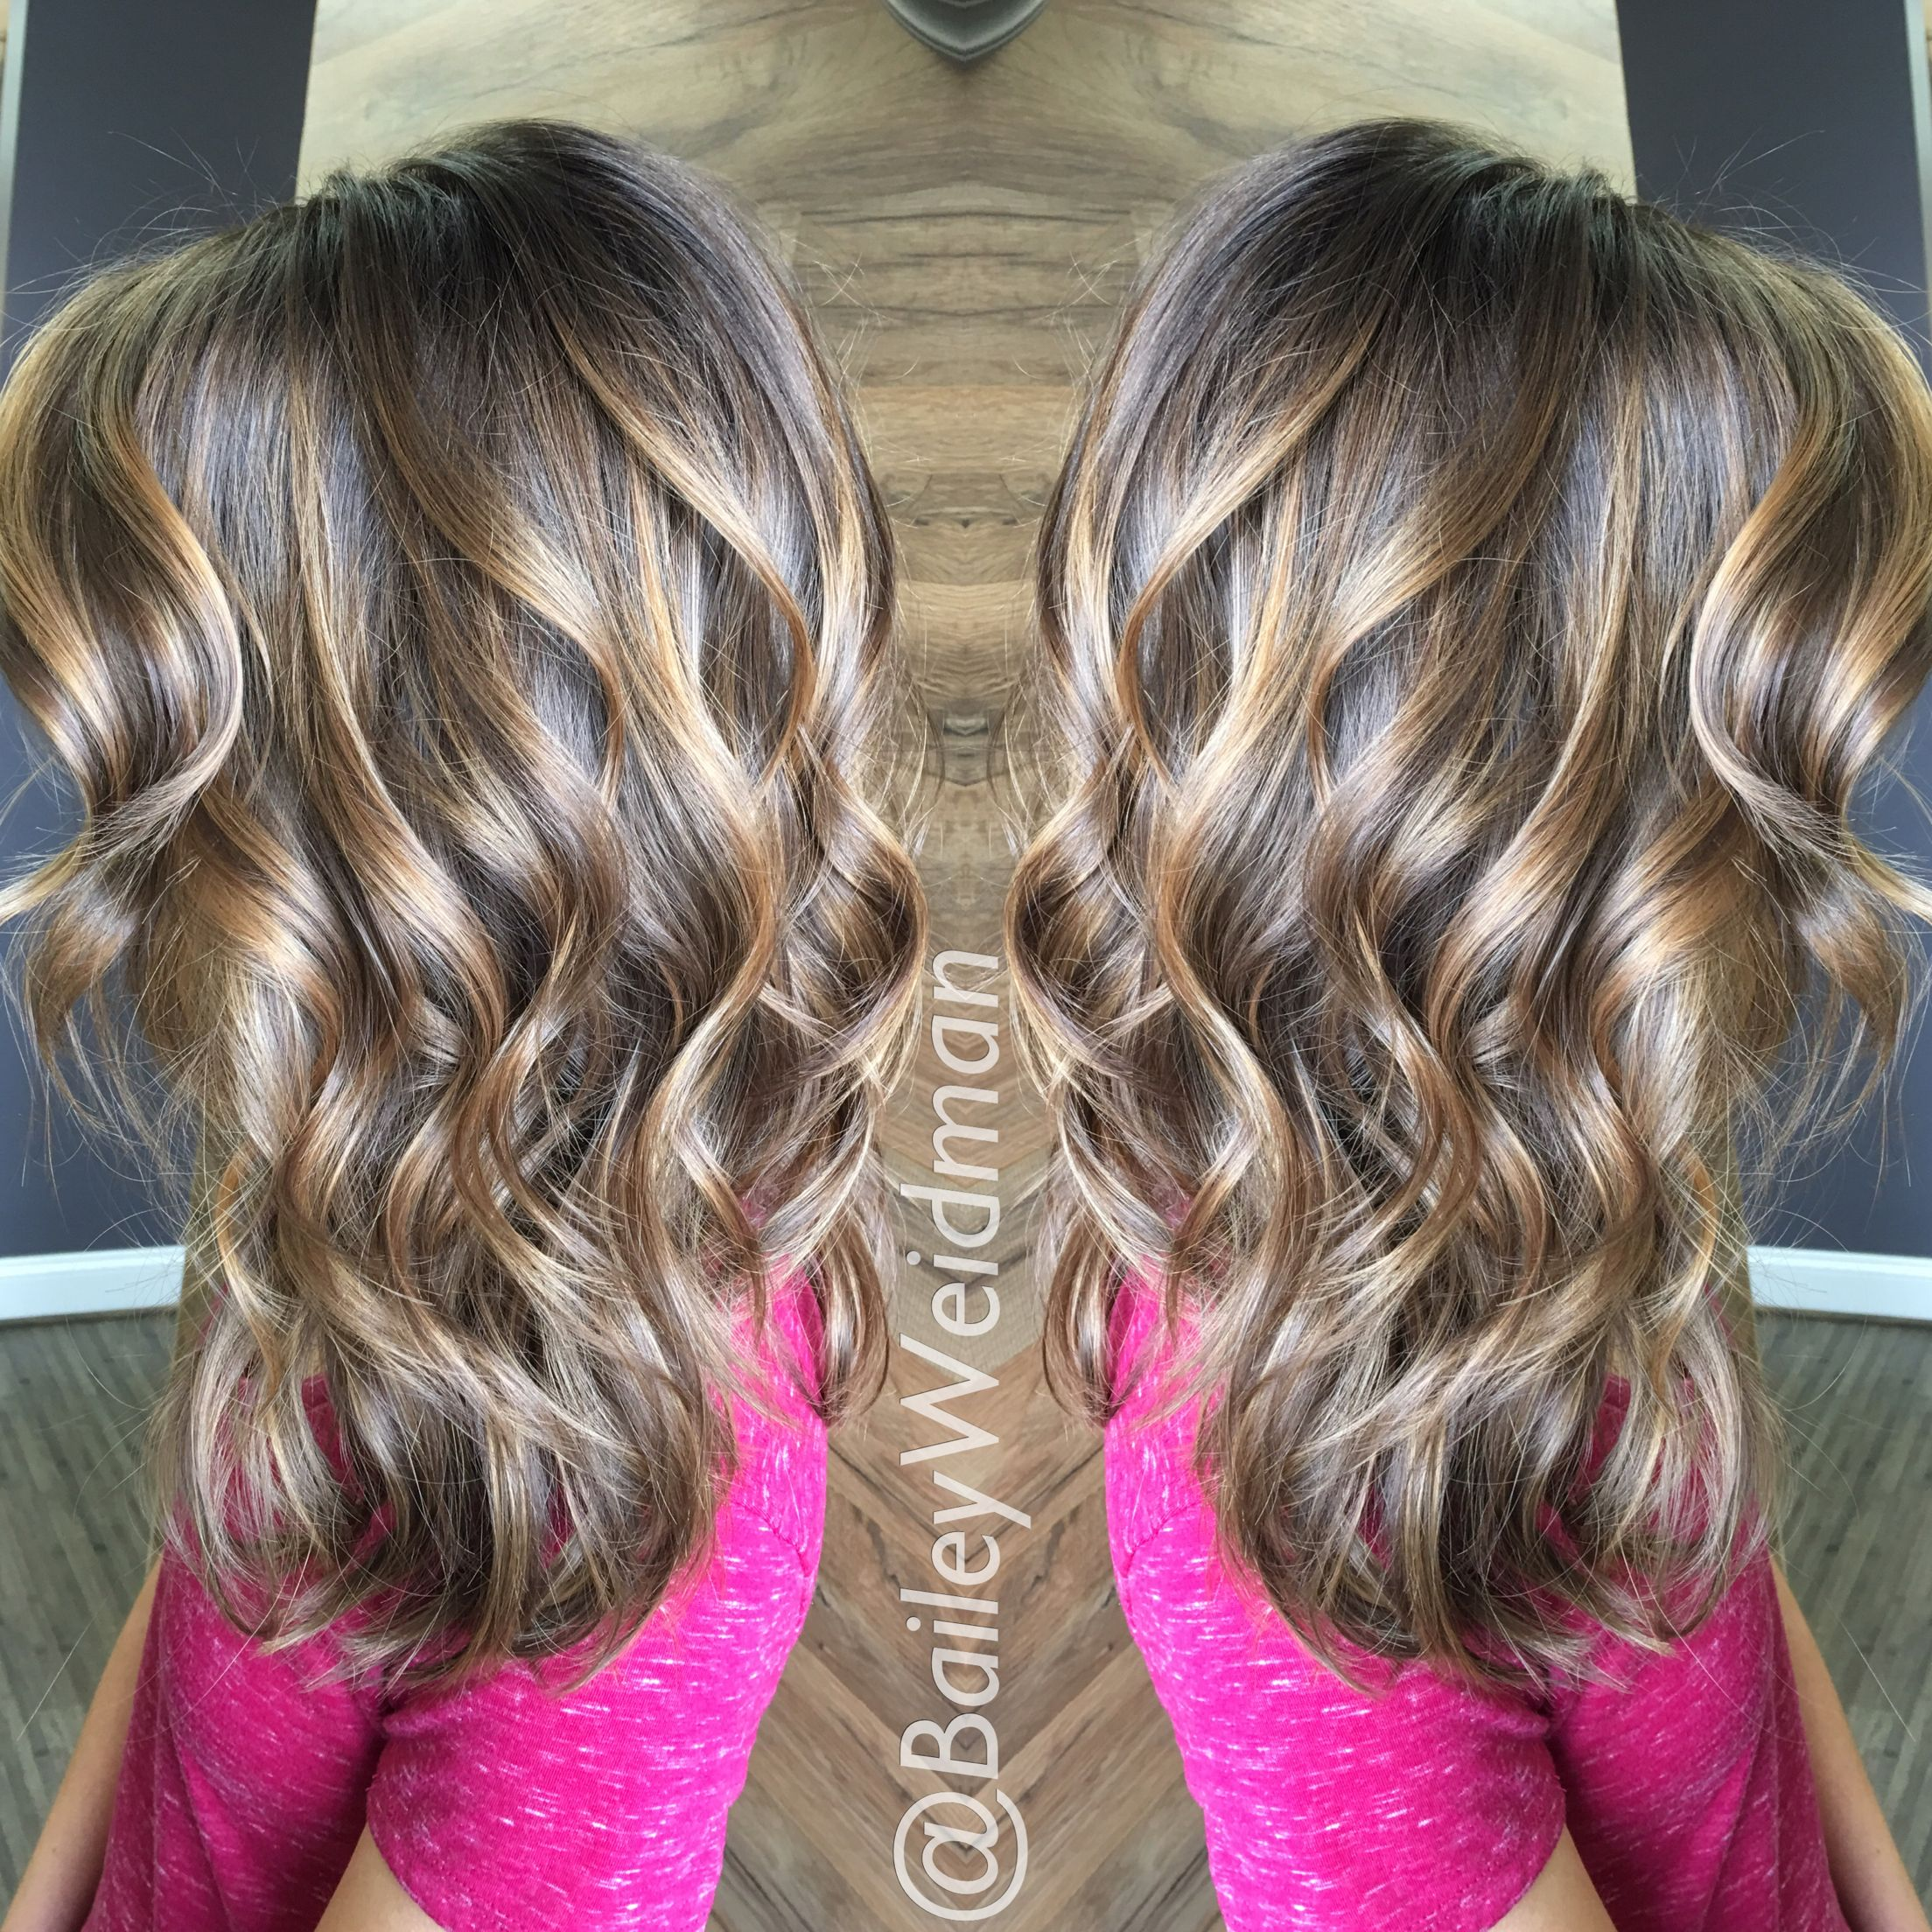 Gorgeous head full of balayage highlights. A lovely pop of color with low maintenance.